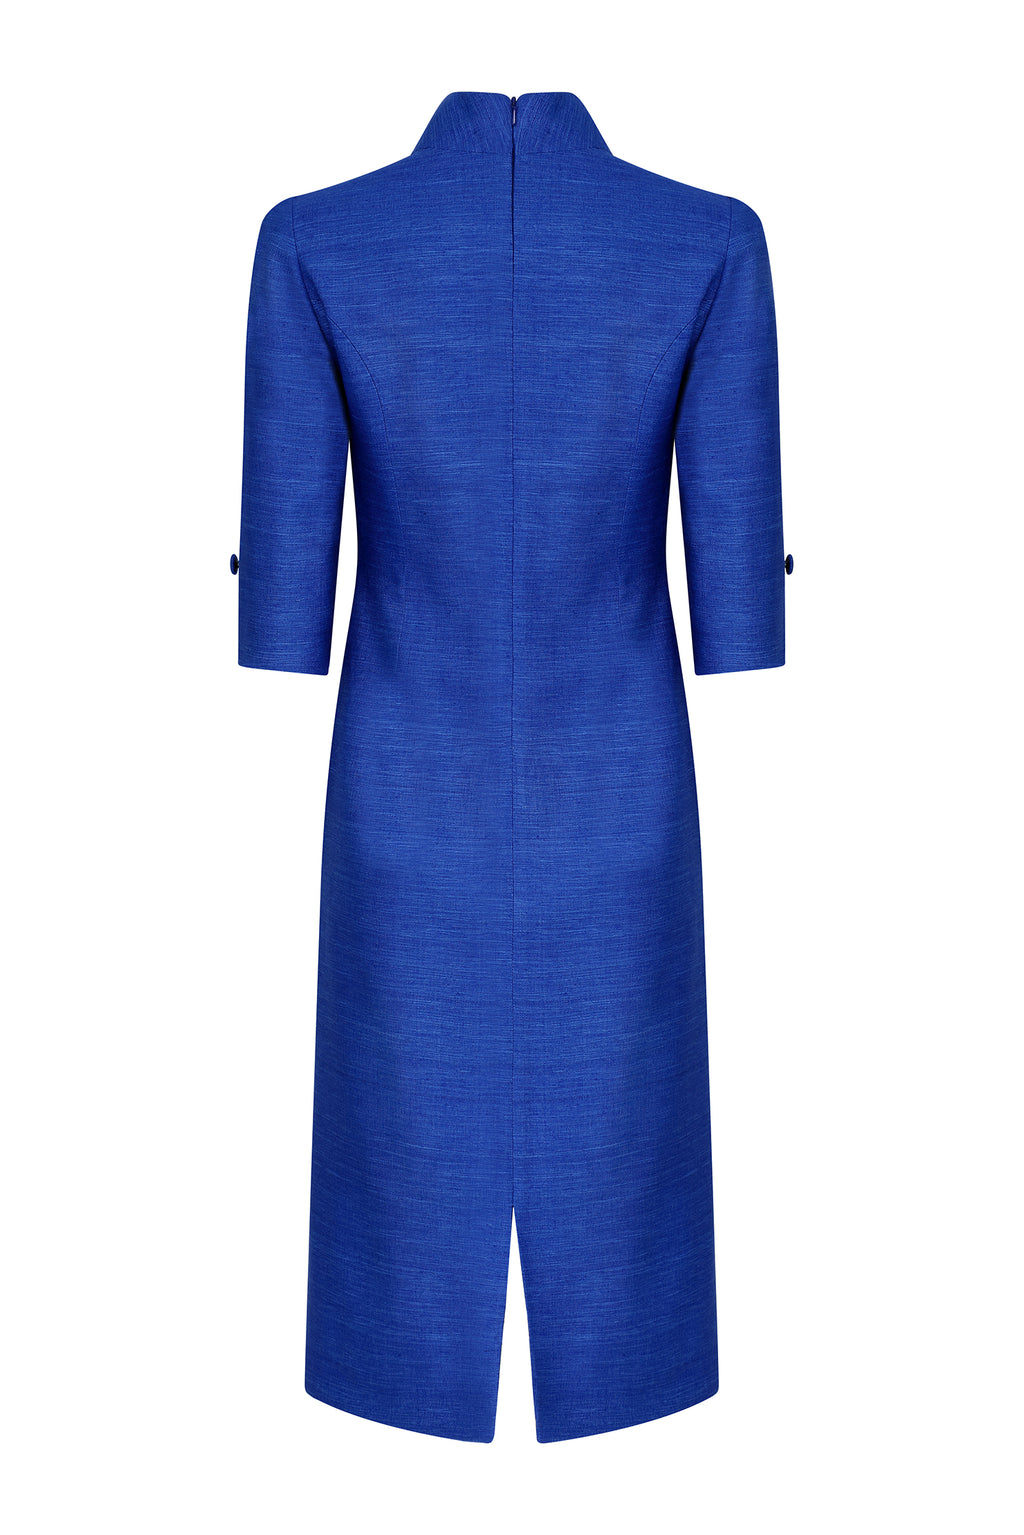 Midi straight dress with sleeves in sapphire raw silk - Nicola